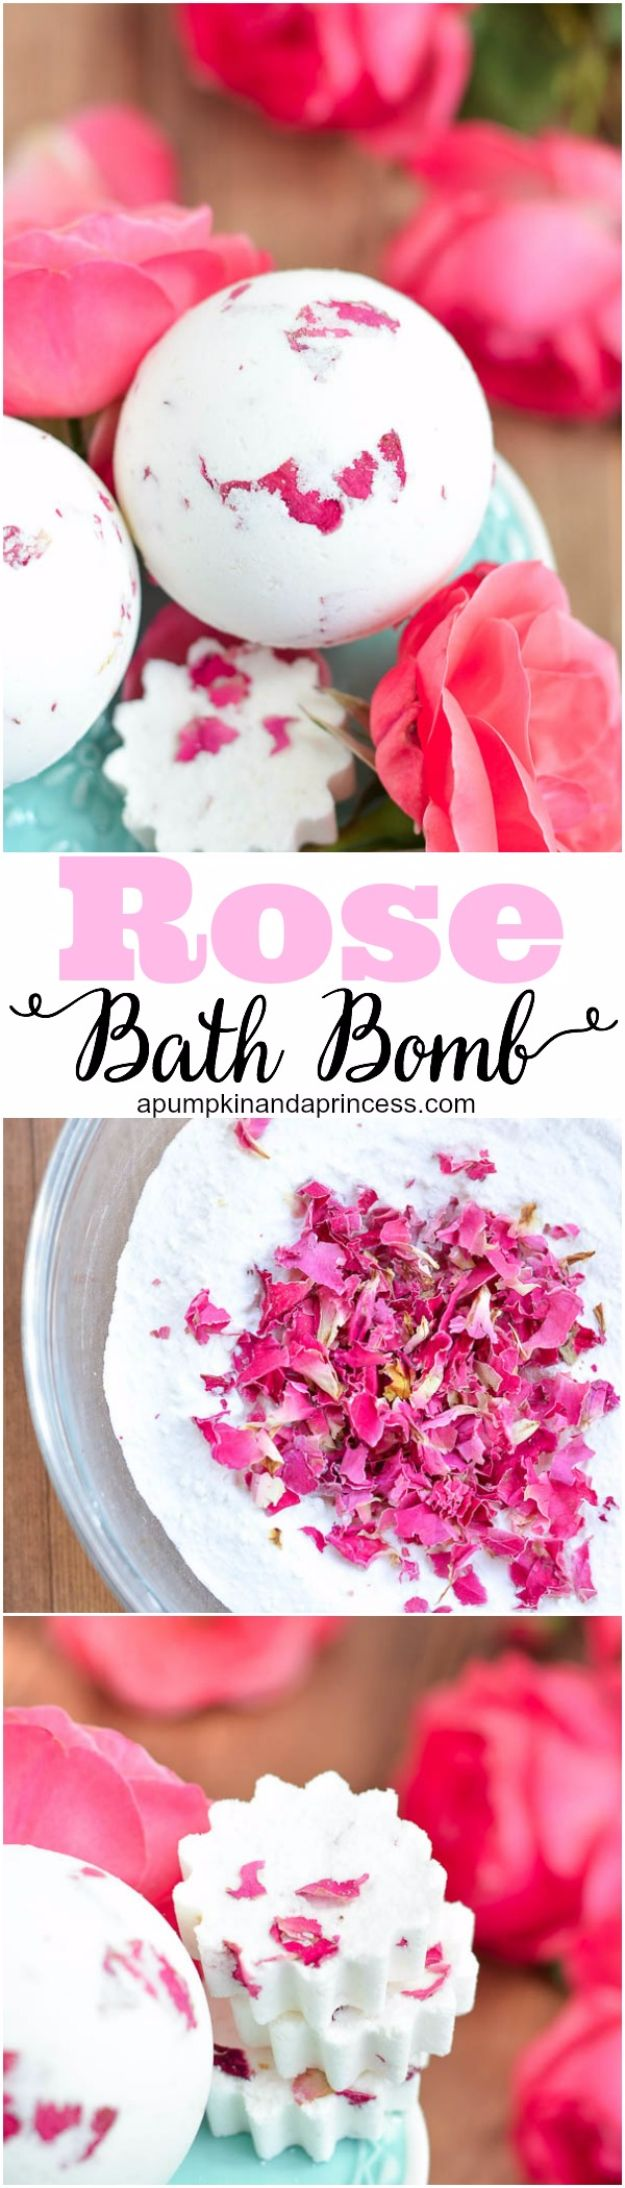 DIY Ideas With Rose Petals - DIY Rose And Milk Bath Bomb - Crafts and DIY Projects, Recipes You Can Make With Rose Petals - Creative Home Decor and Gift Ideas Make Awesome Mothers Day and Christmas Gifts - Crafts and Do It Yourself by DIY JOY #rosecrafts #diygifts